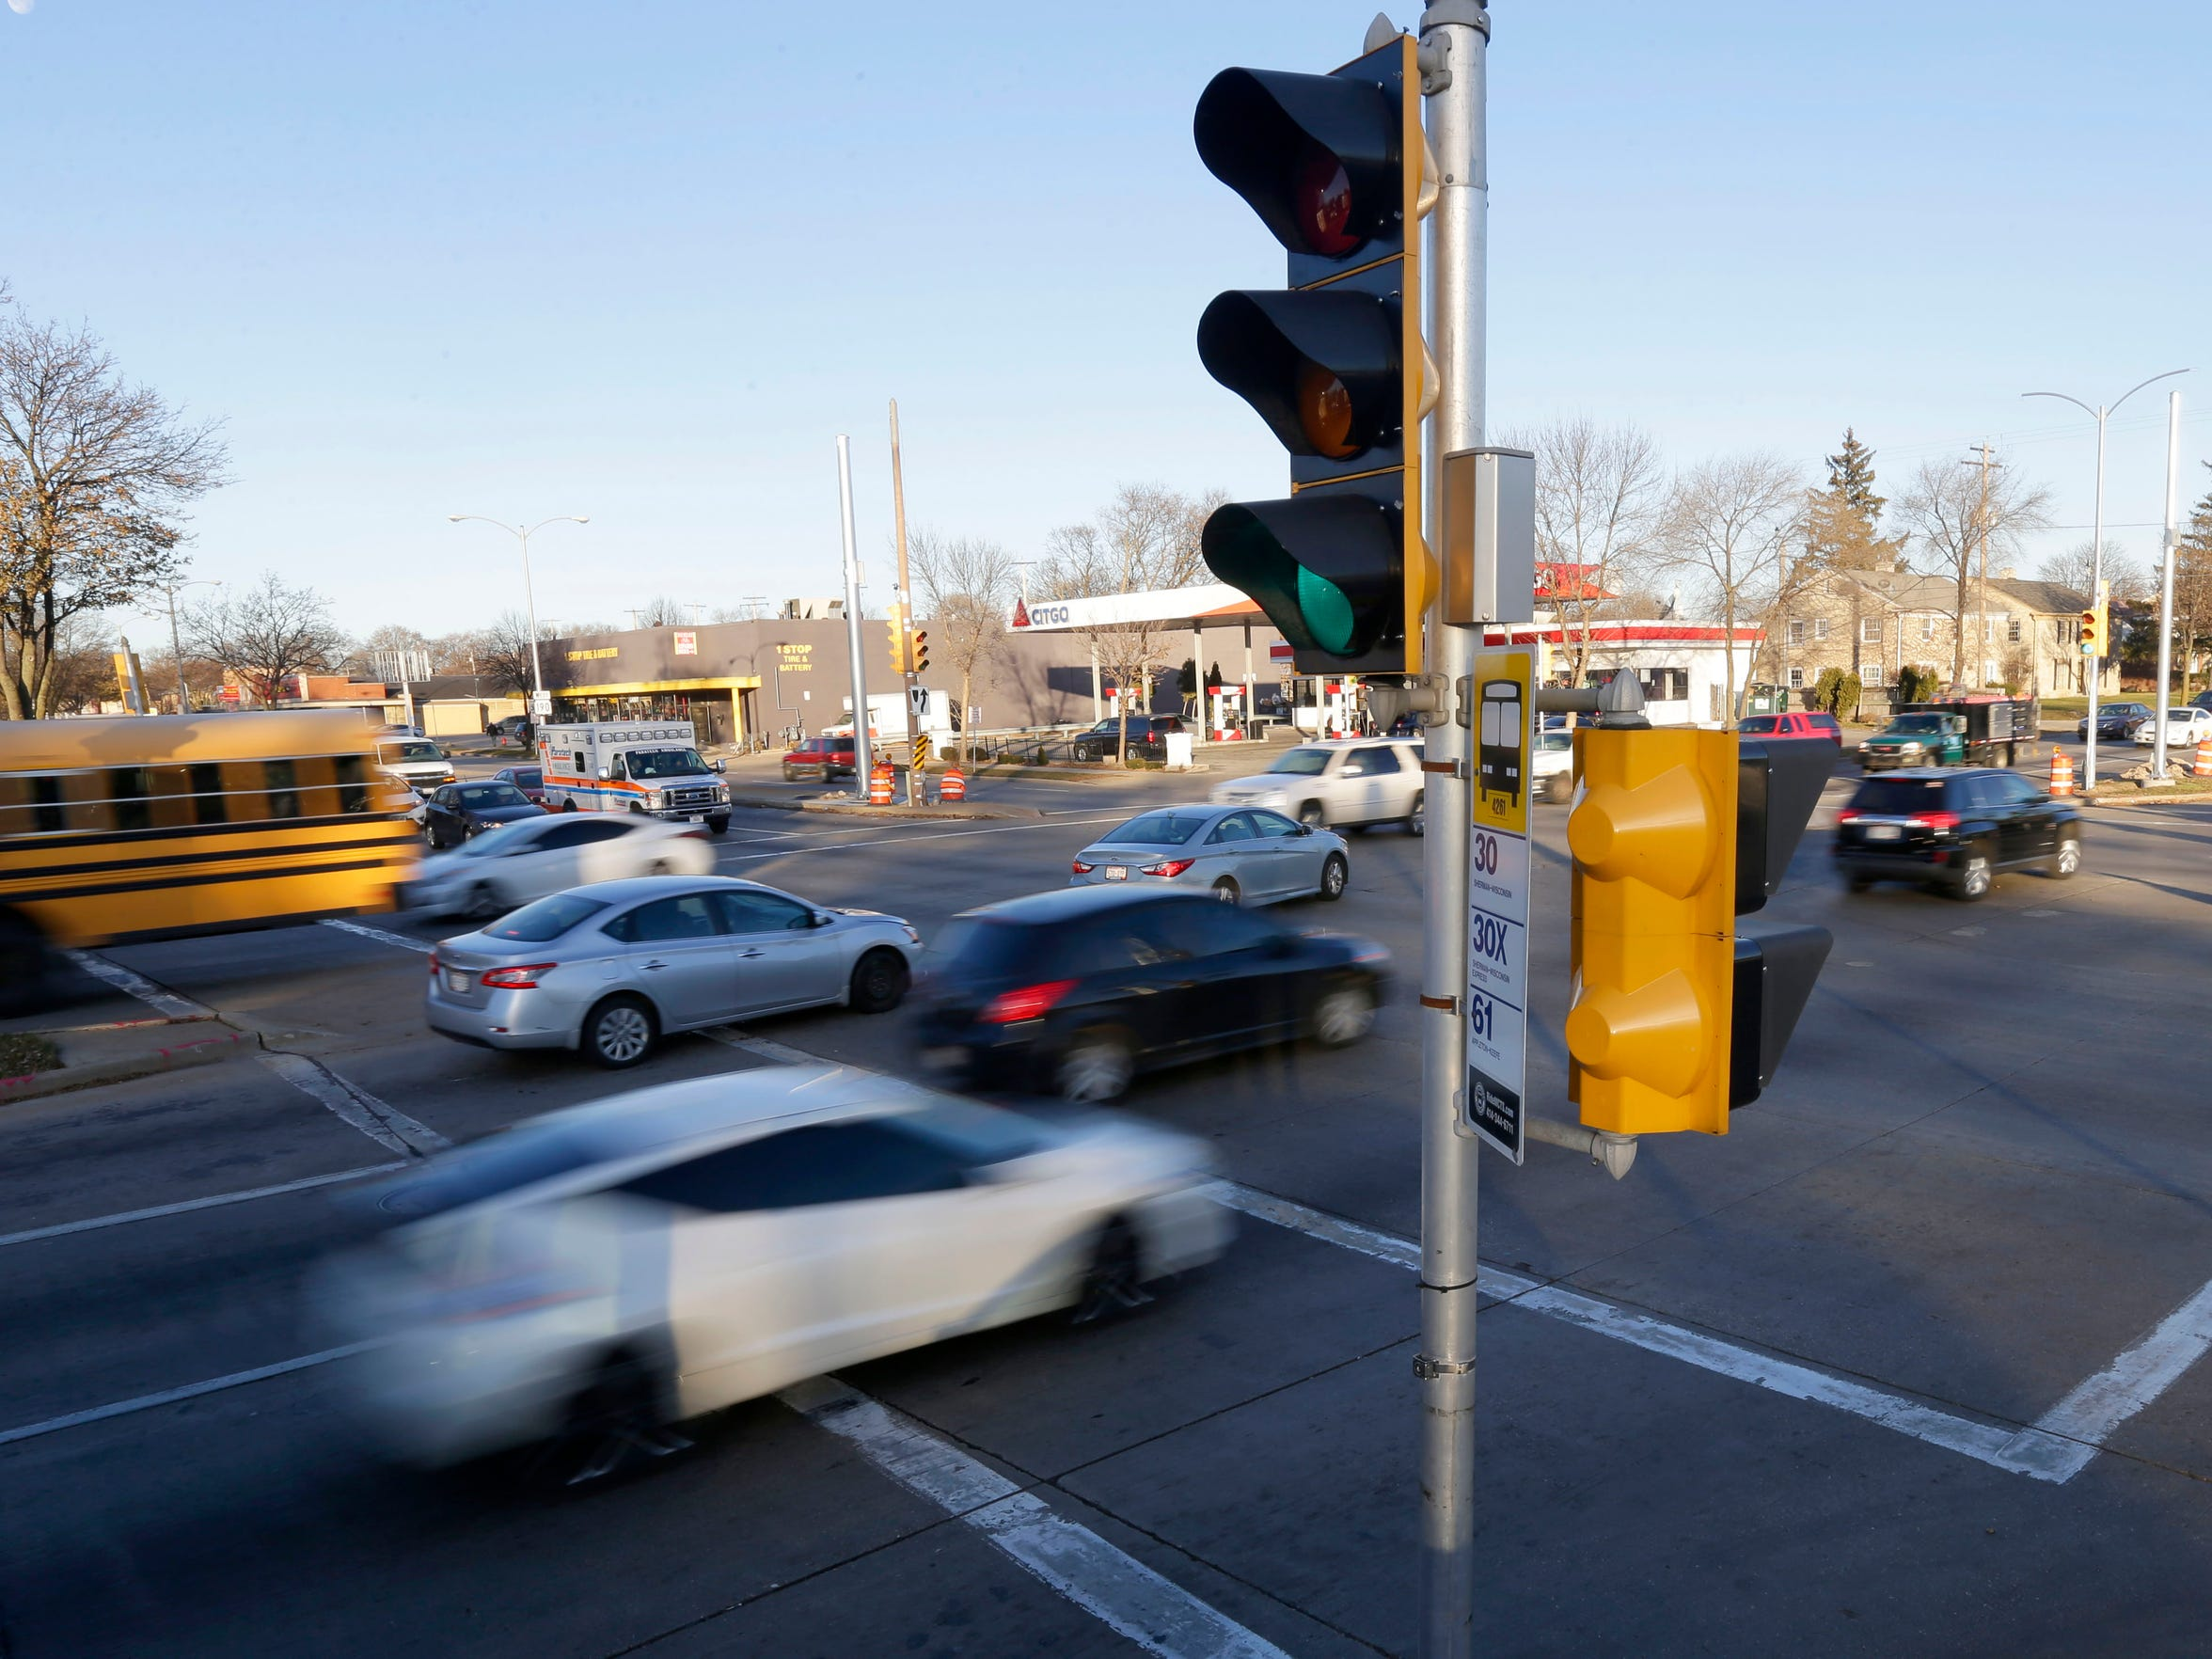 Motorists on West Capitol Drive looking northwest at North Sherman Boulevard. Milwaukee has a problem with reckless driving, and some have argued the city should use cameras to electronically monitor dangerous intersections and automatically issue traffic citations.